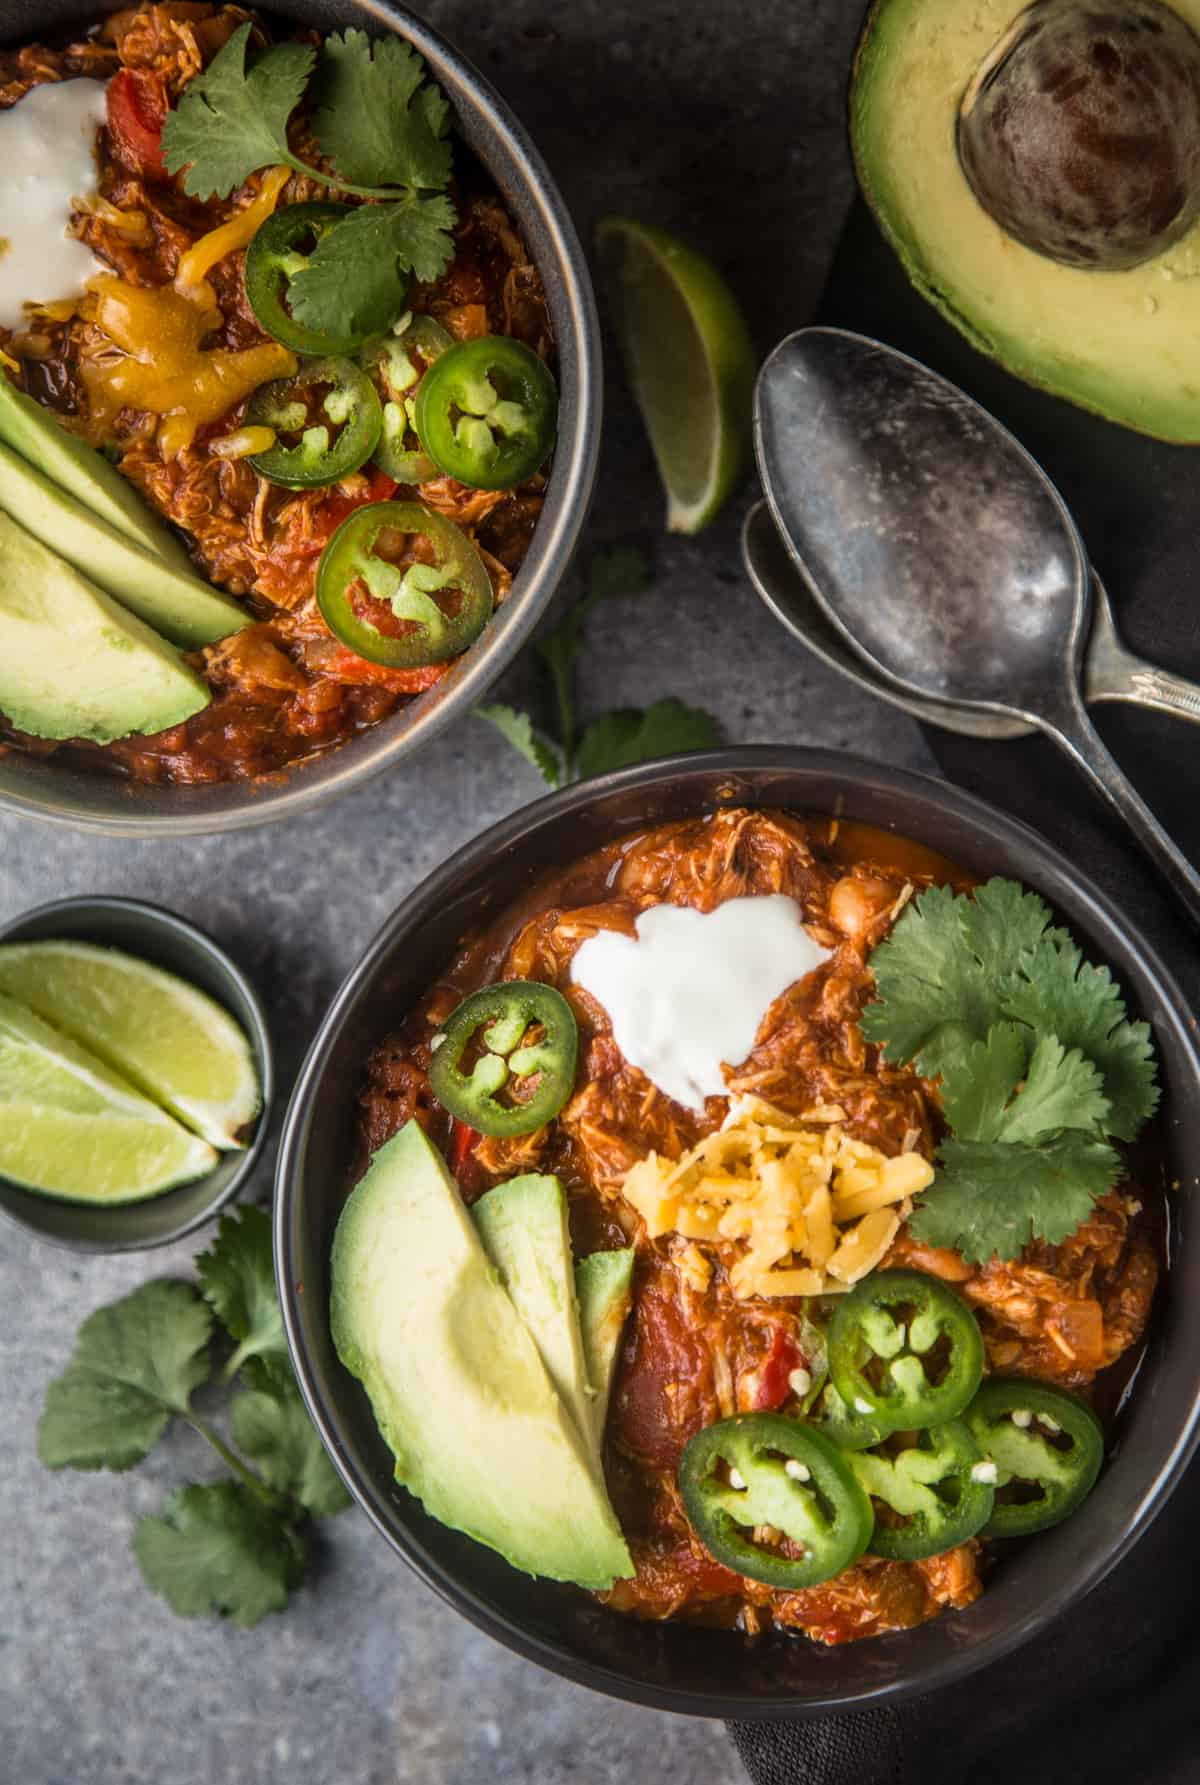 Two bowls of smoked chicken chili